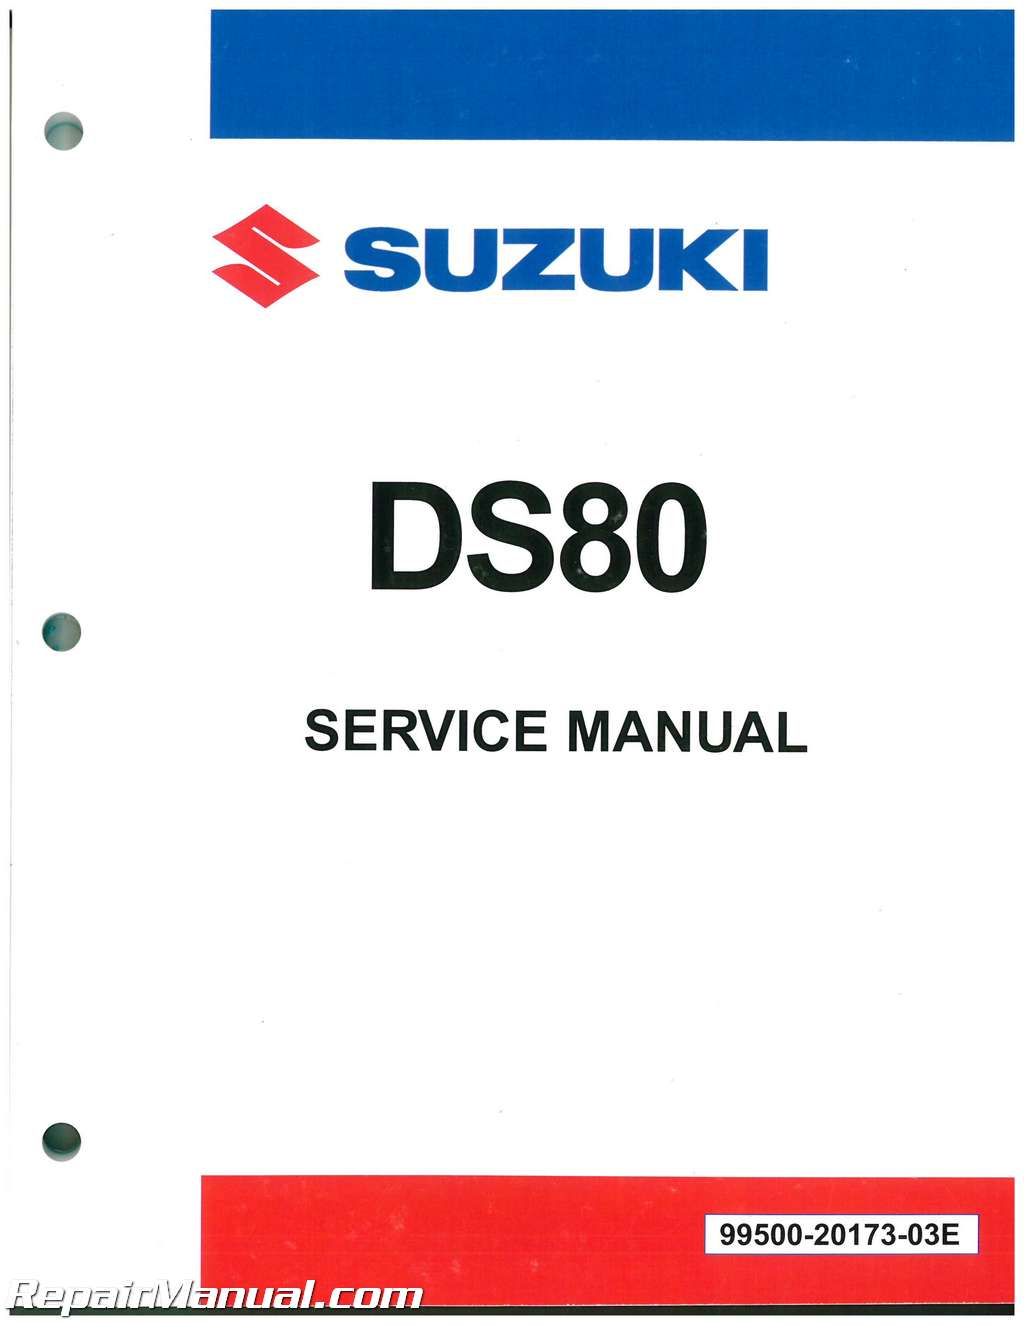 1981-2000-Suzuki-DS80-Motorcycle-Service-Manual_001.jpg ...